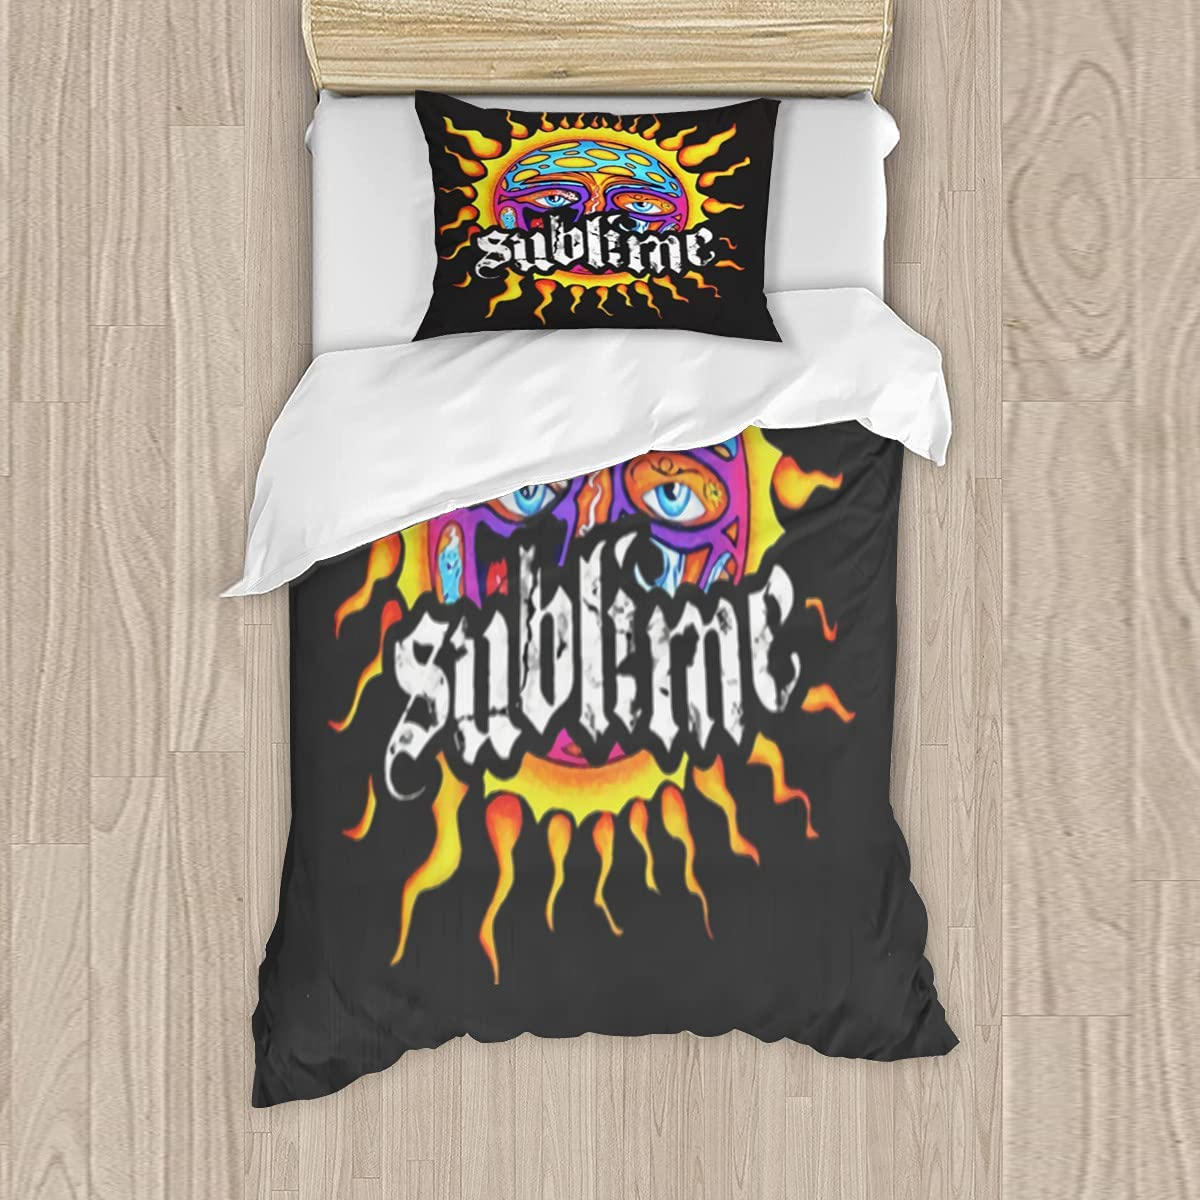 Sb unisex Cool Bedding Sets 3 Pieces 3D Printed Quilt Duvet Cover SEAL limited product